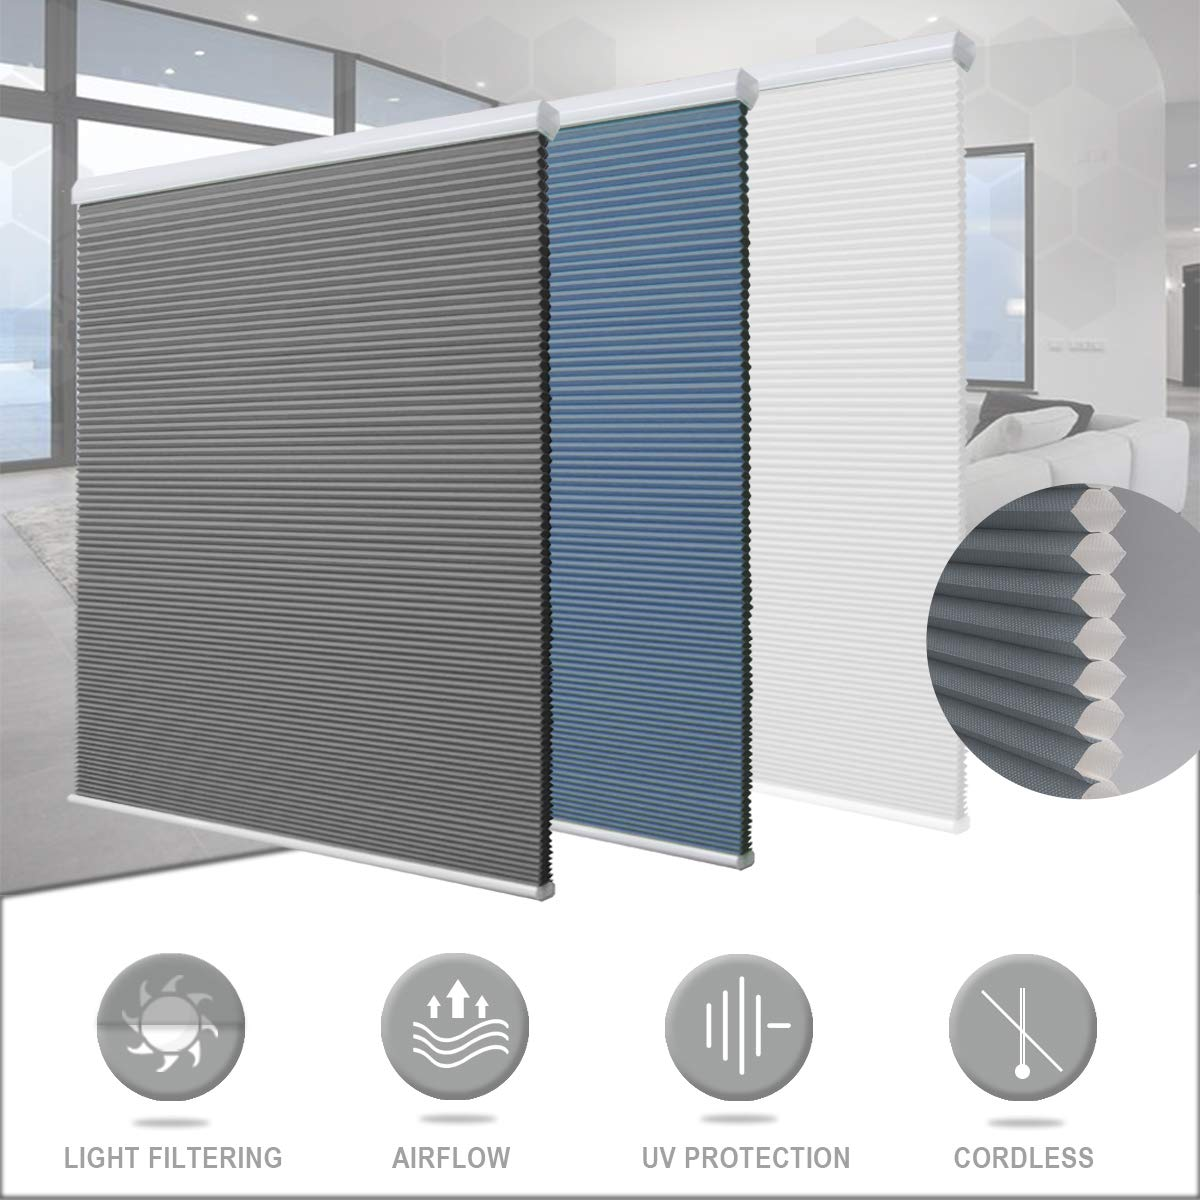 Matinss Cellular Shades Cordless Window Blinds Honeycomb Shades for Home and Windows Bedroom, Light Filtering Grey-White, 29x64 by Matinss